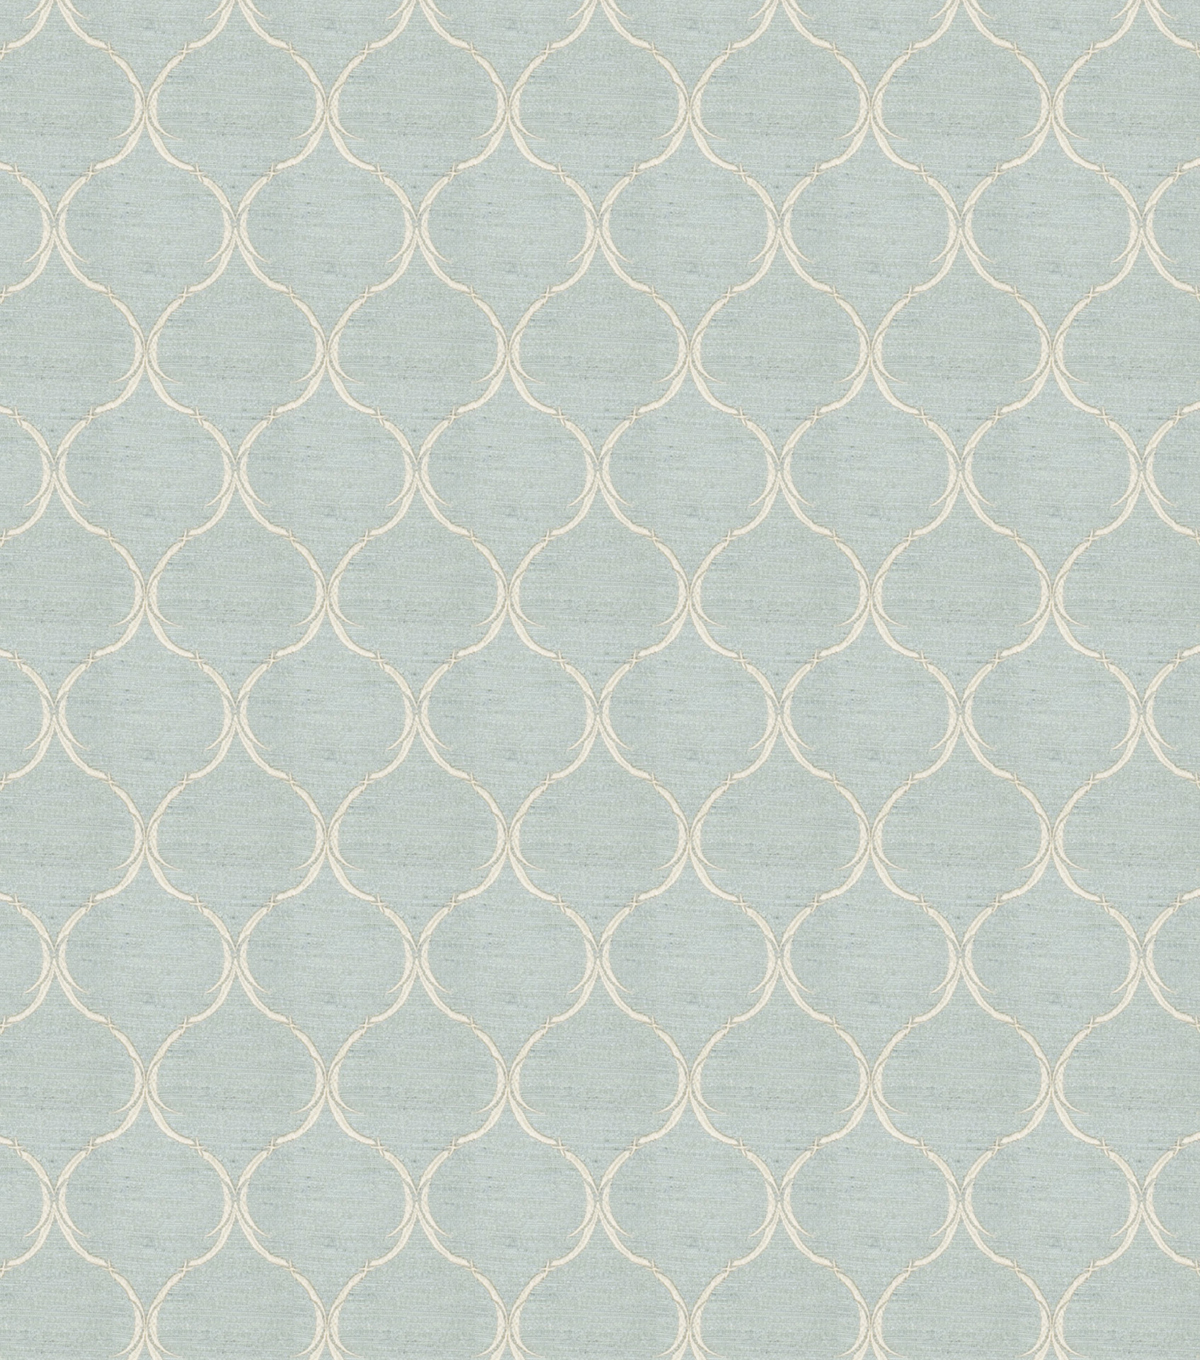 Eaton Square Lightweight Decor Fabric 54\u0022-Biscuit/Ice Blue